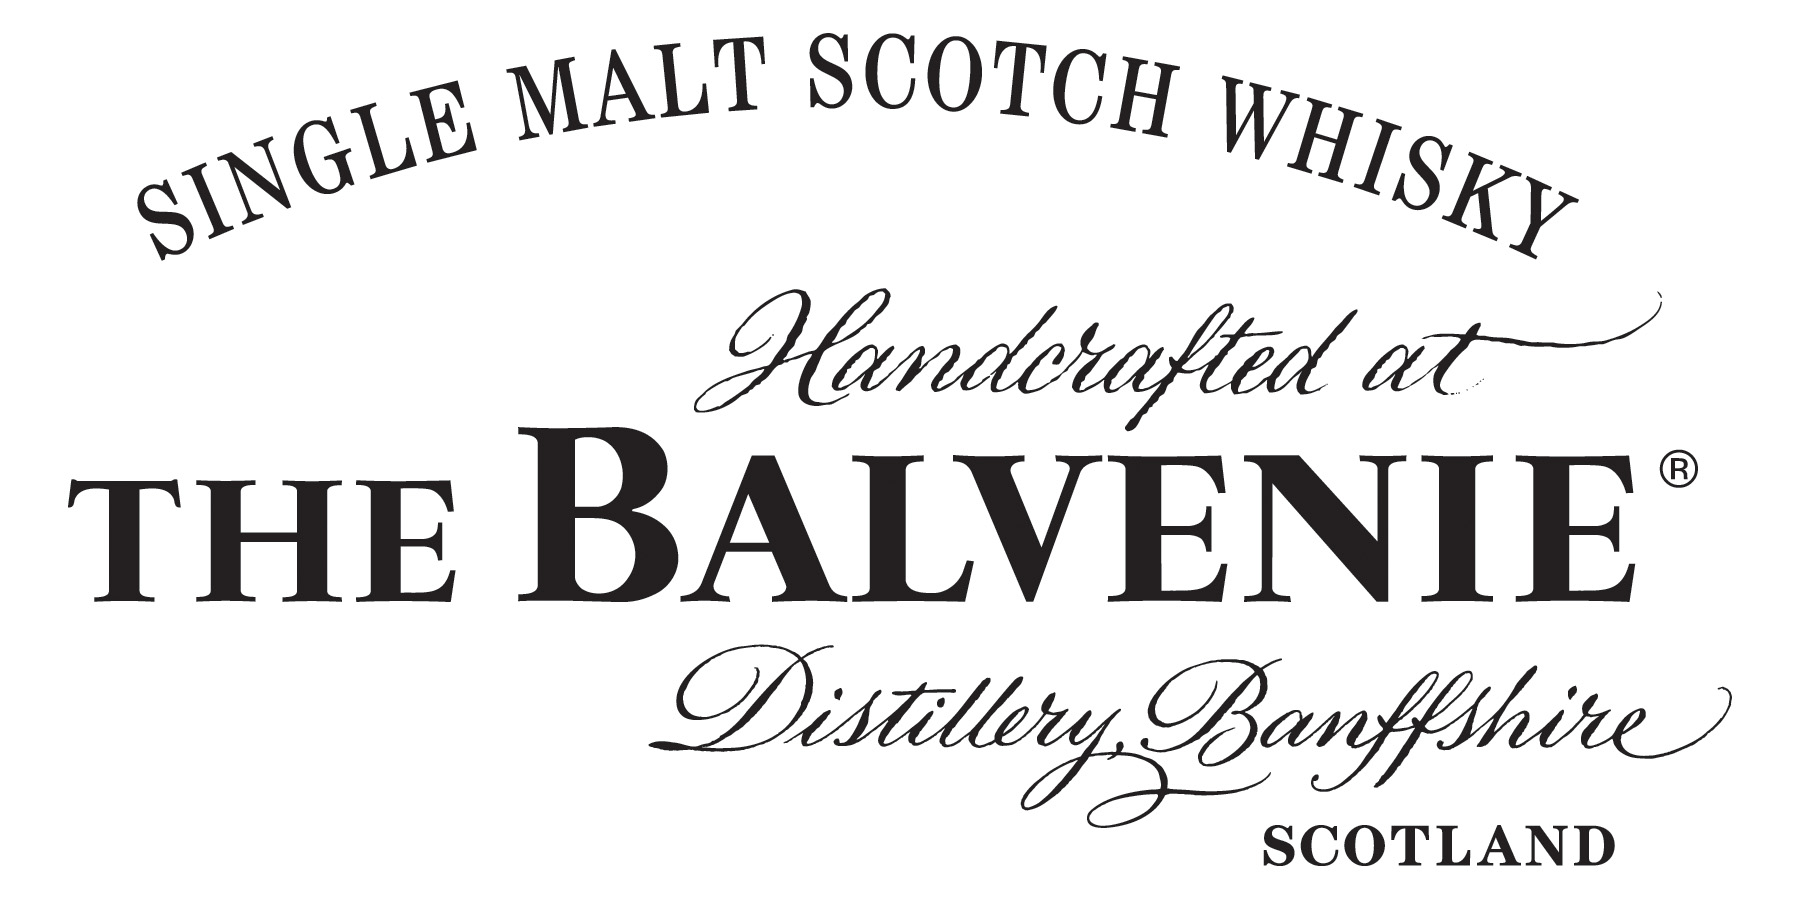 The Balvenie Scotch Whisky logo